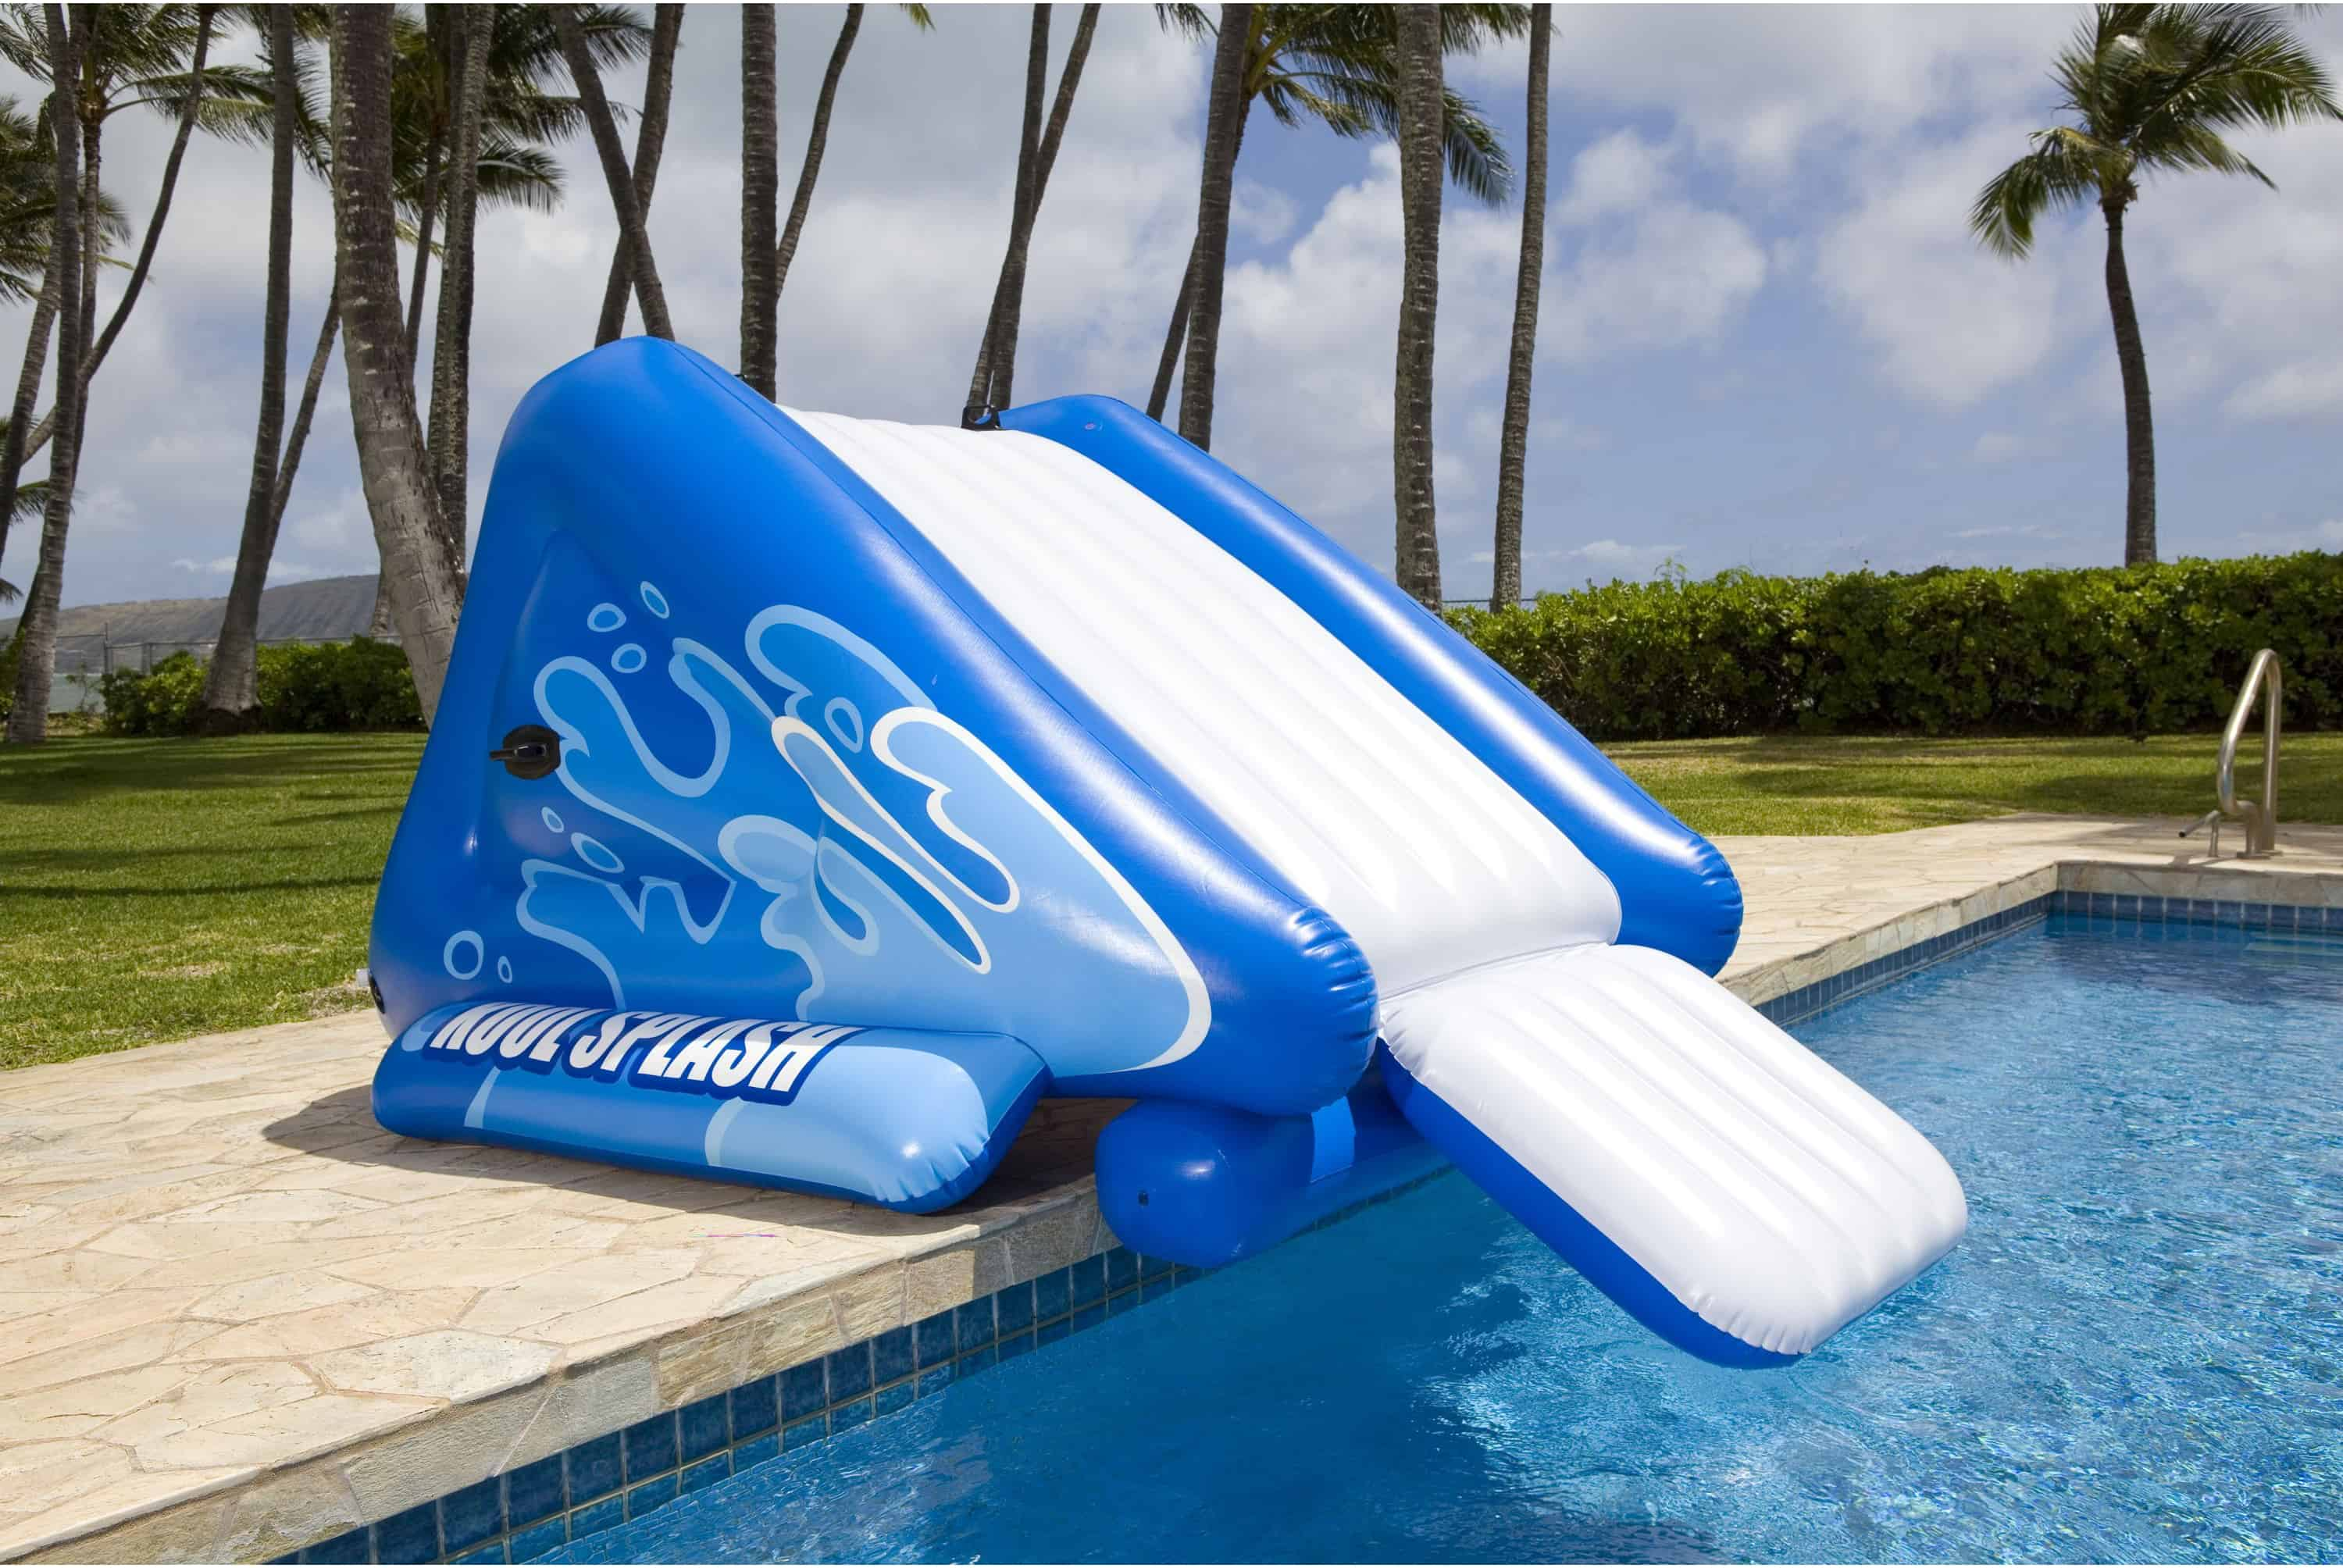 This Poolside Water Slide From Walmart Will Turn Your Pool